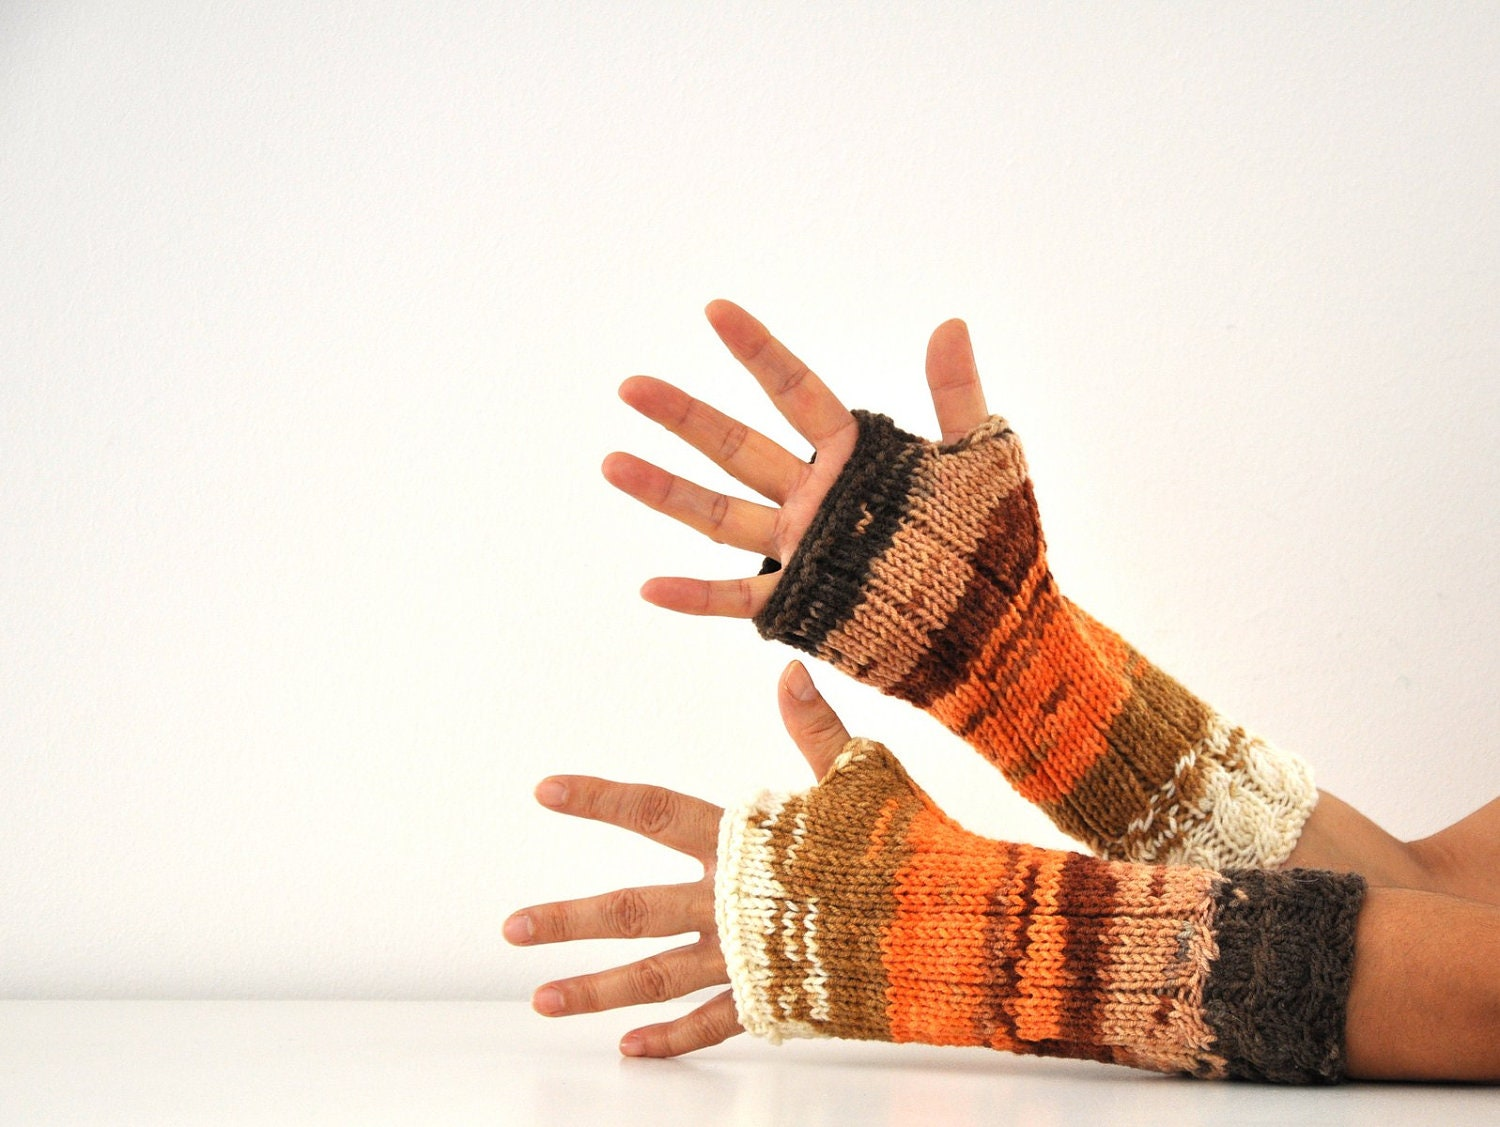 Long Fingerless Gloves Armwarmers Mittens Brown Orange Ivory Multicolor Hand Knit Autumn Accessories Fall Fashion - reflectionsbyds